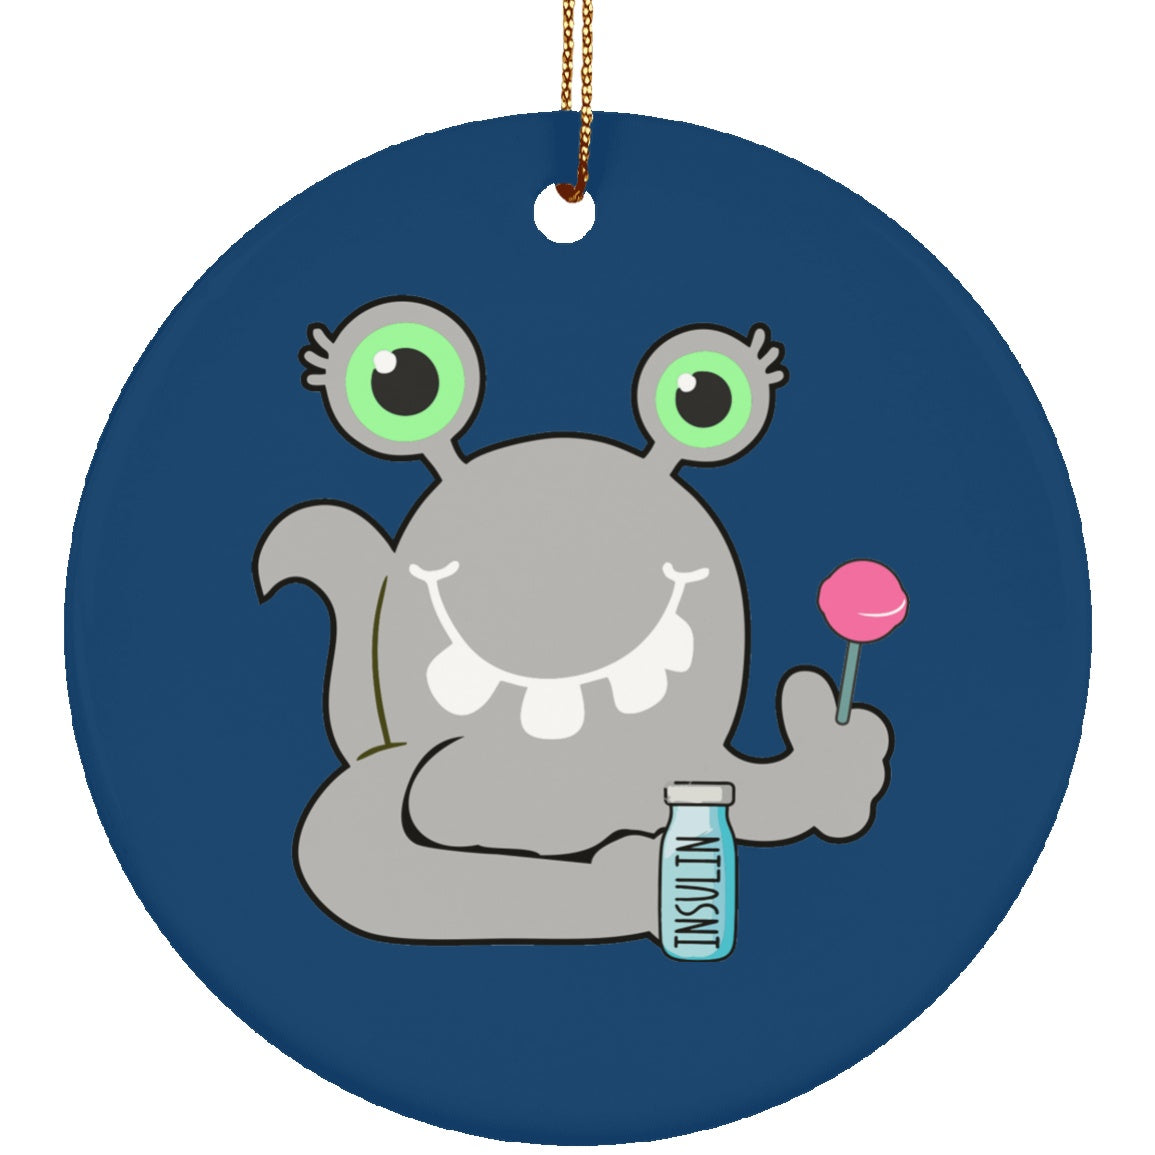 Diabetes Monster Circle Ornament - The Unchargeables